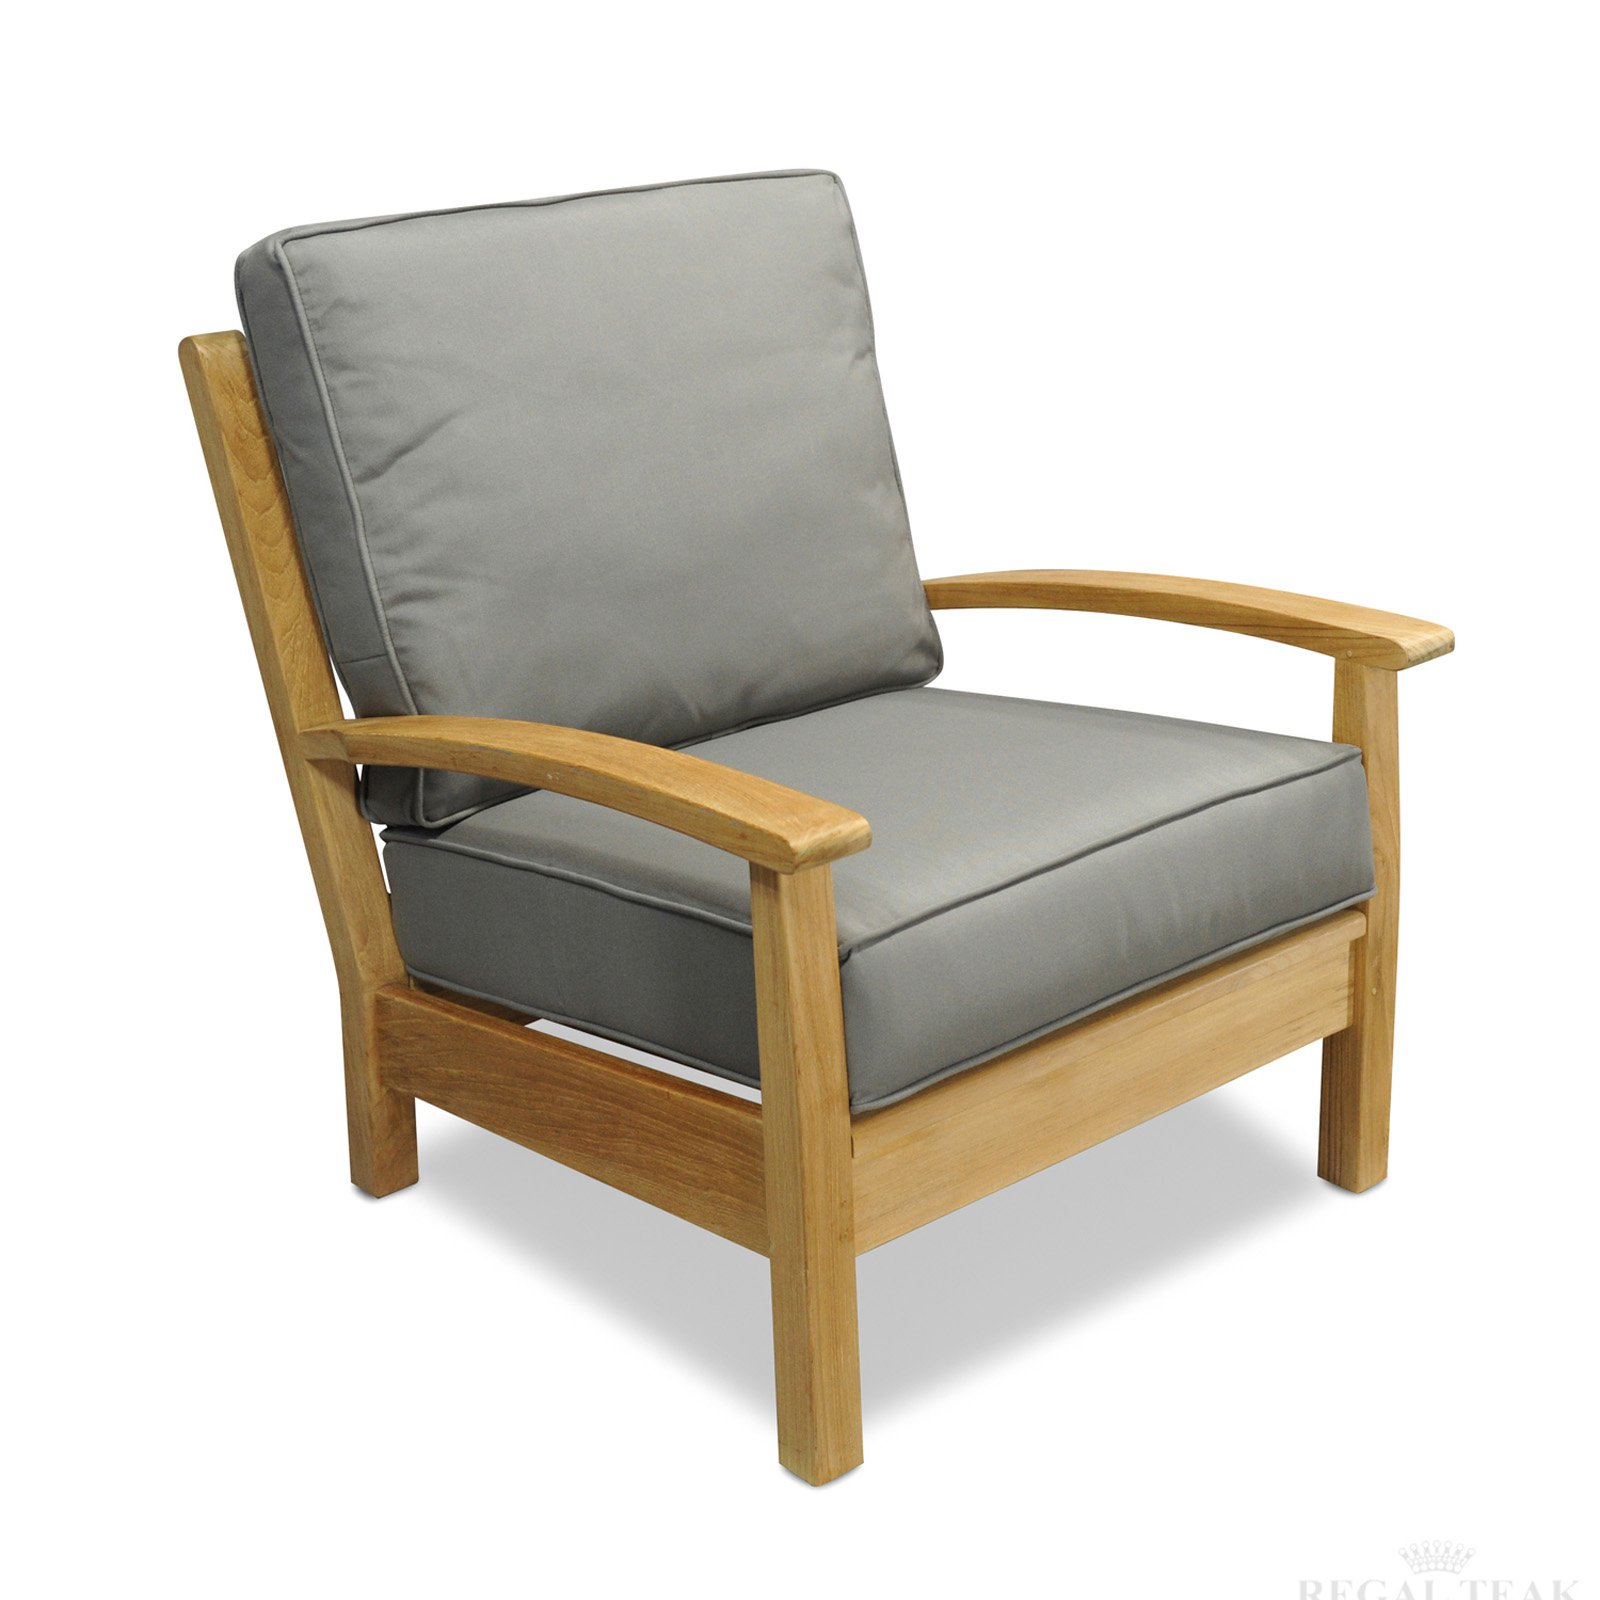 Regal Teak Teak Deep Seating Patio Club Chair - Set of 2